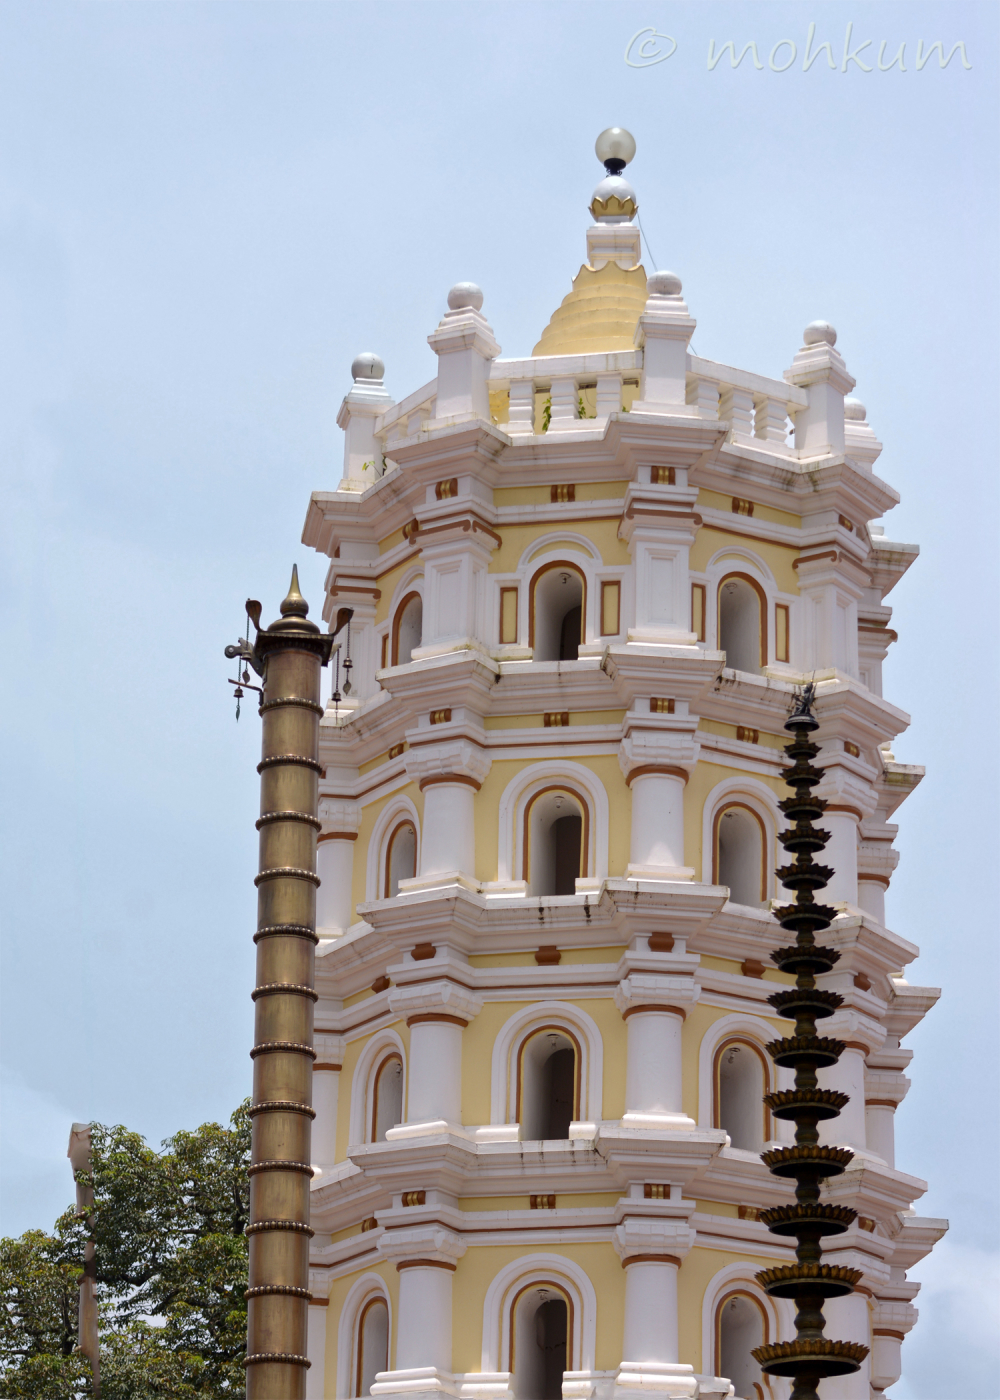 The majestic tower inside the temple!